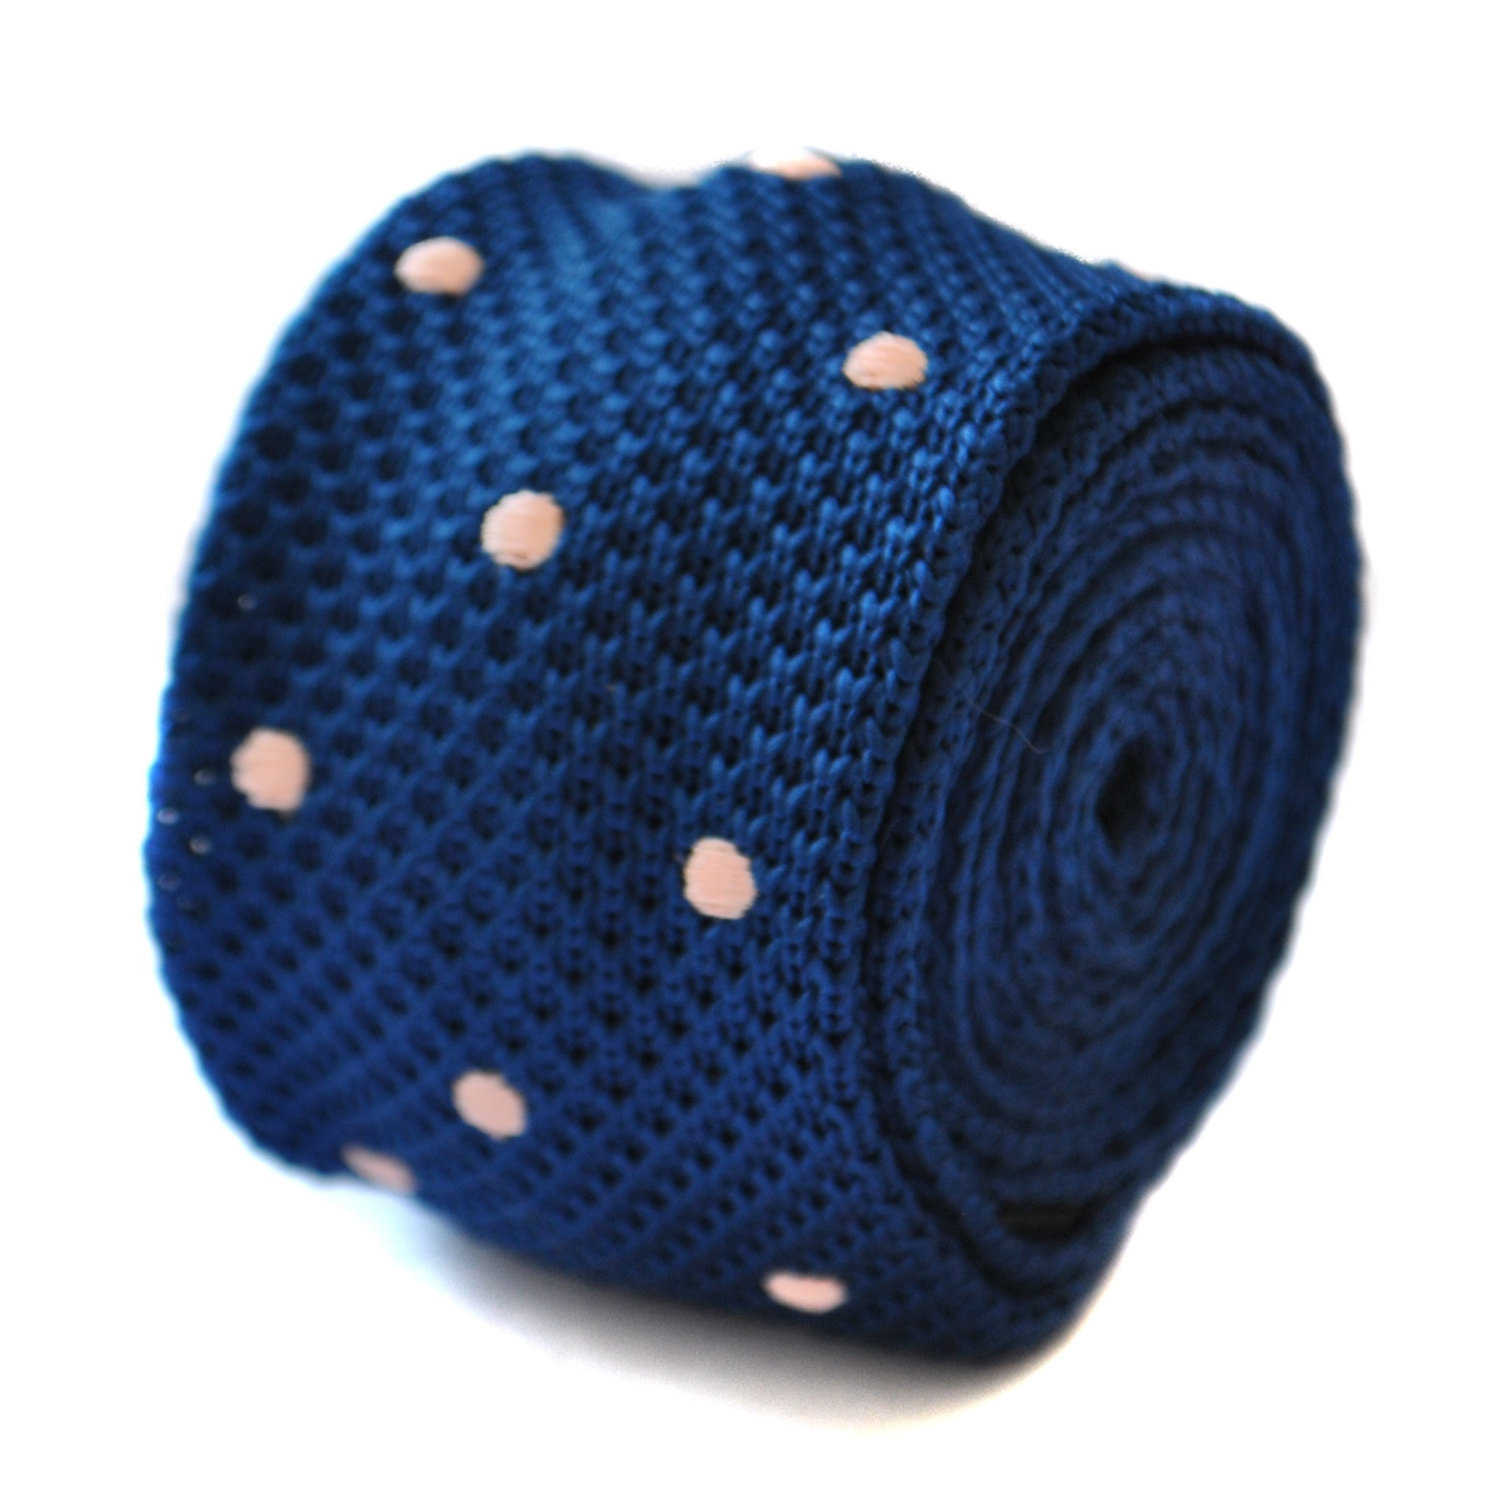 skinny knitted navy blue and pink polka spot tie by Frederick Thomas FT1892